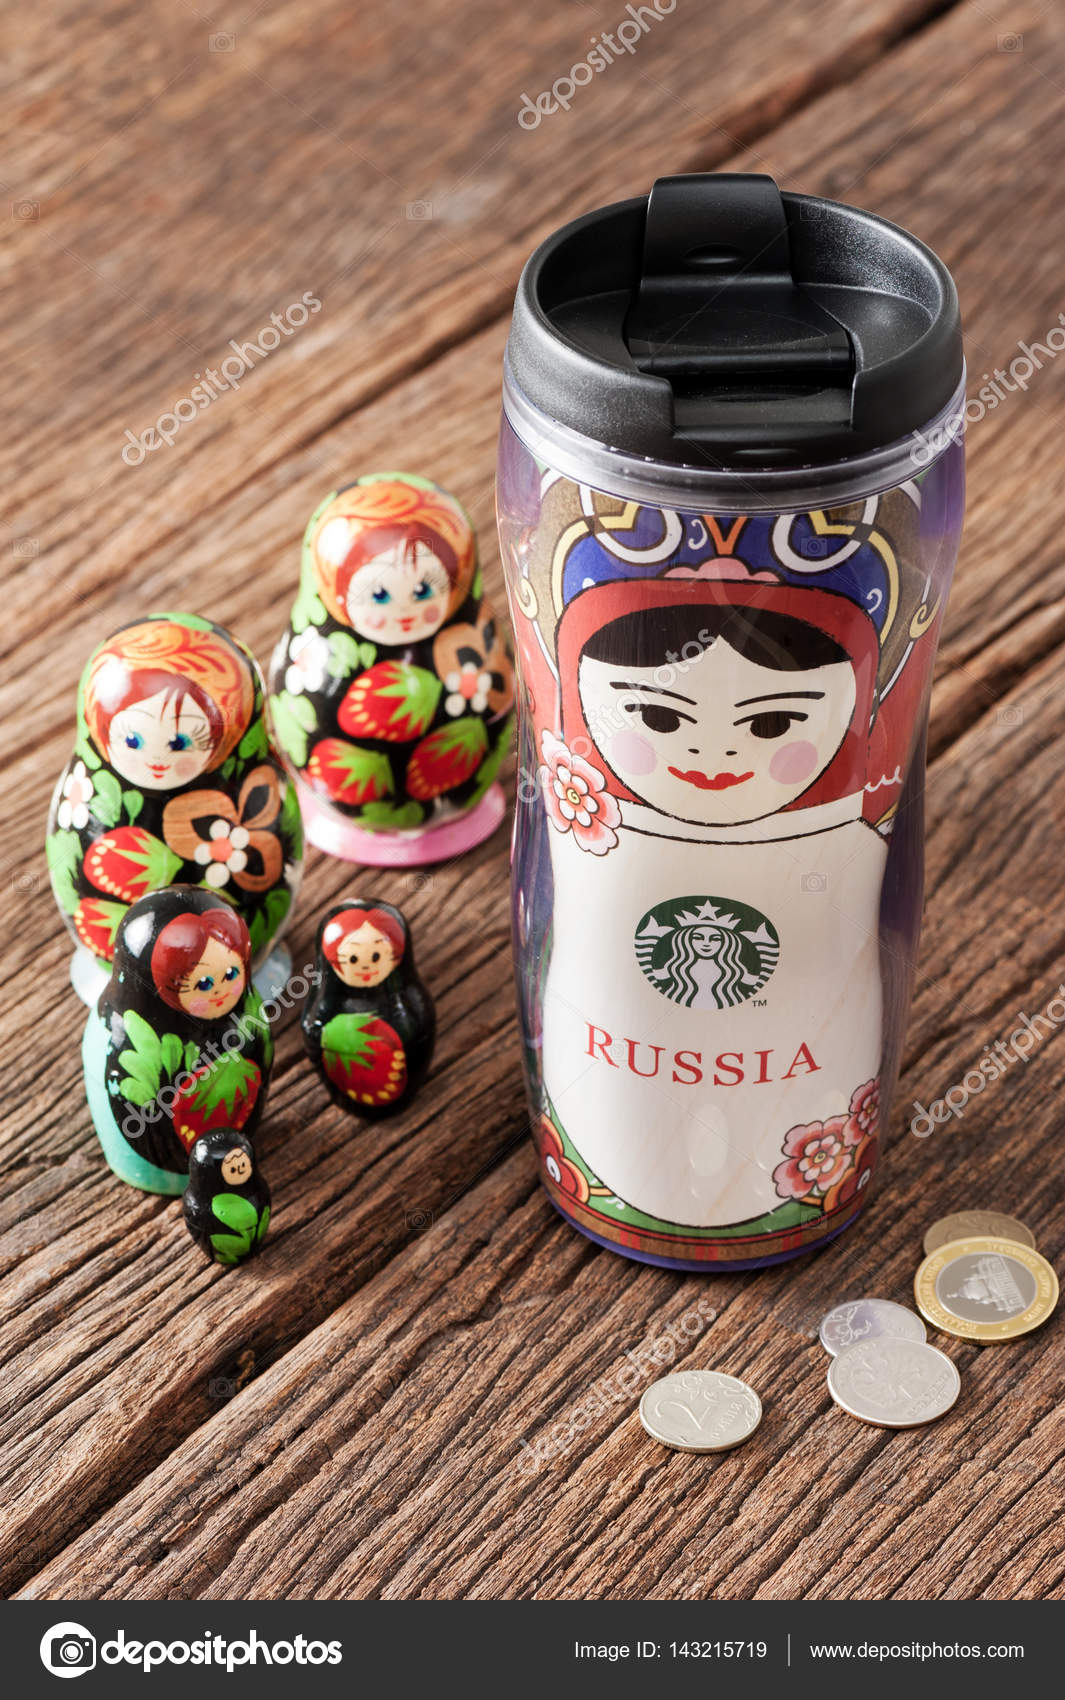 Exchange Your Receipt With A Half Price Starbucks Indonesia